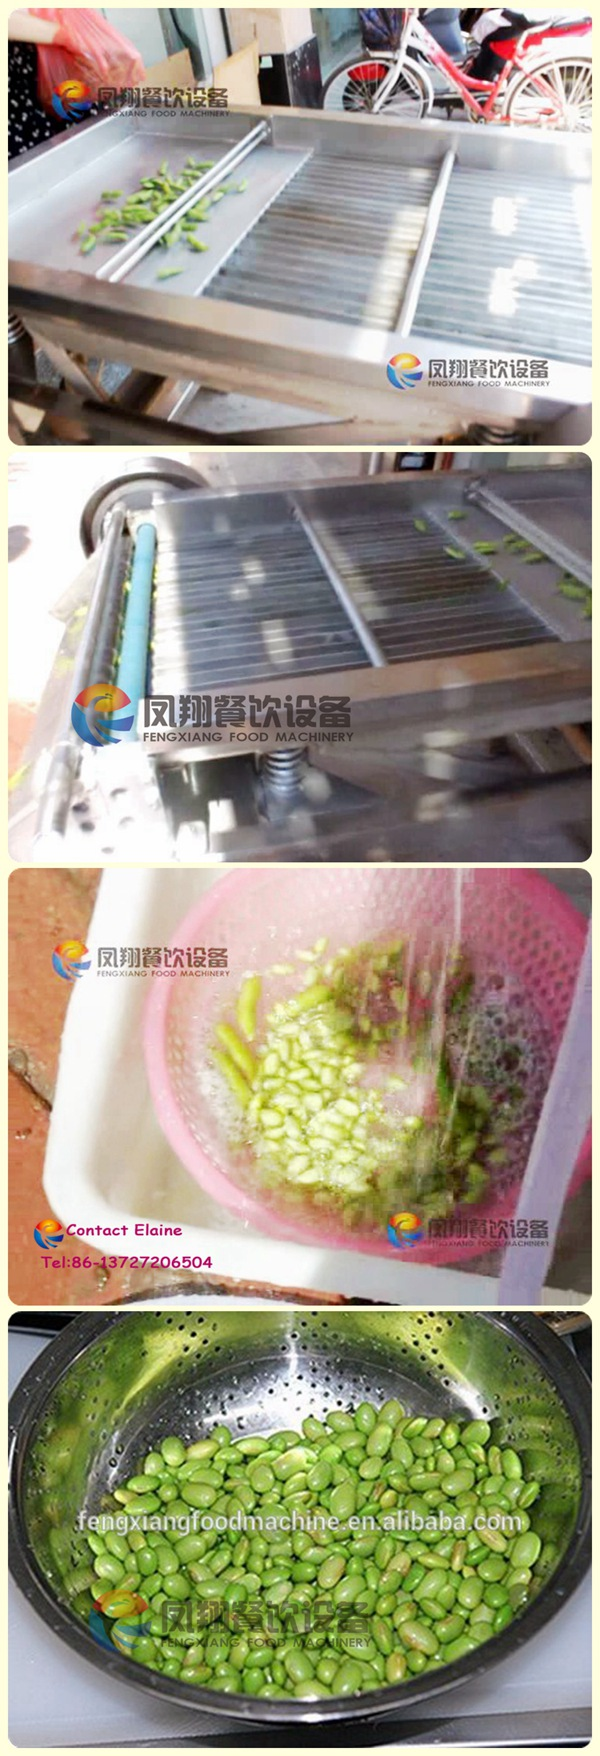 Industrial Automatic Machine Peeling Beans and Peas with Ce Certificated